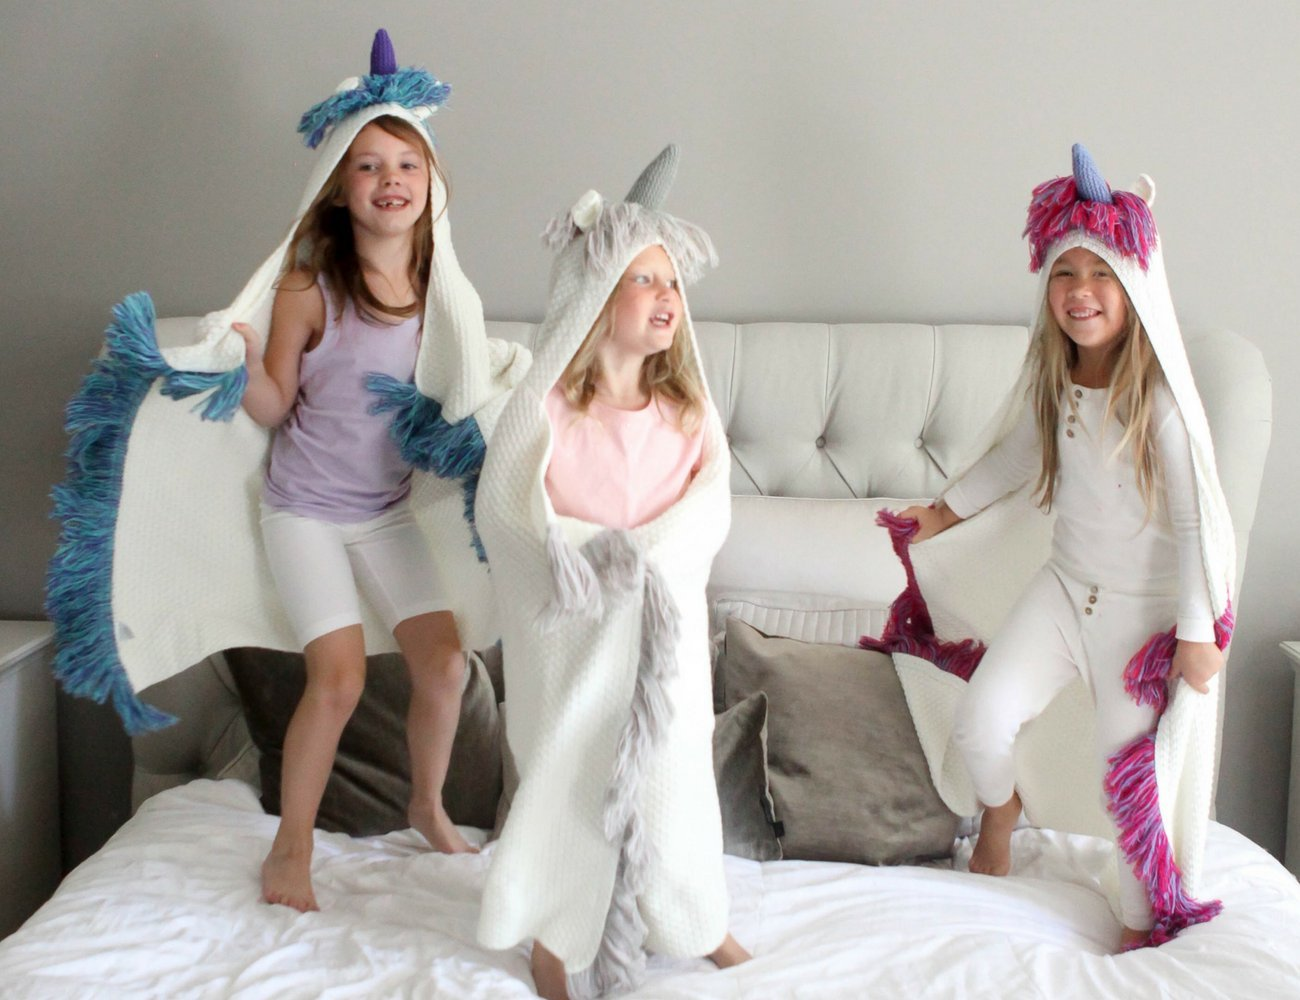 Born To Unicorn Blanket for Girls- Hooded, Kids Pink, Purple Wearable Crochet Knit w/Hood Throw Blankets Wrap, Toddlers Cute Plush Knitted Hoodie, Soft Kids Blanket Gift, Cozy Magic Cloak w/Hood by Born To Unicorn (Image #10)